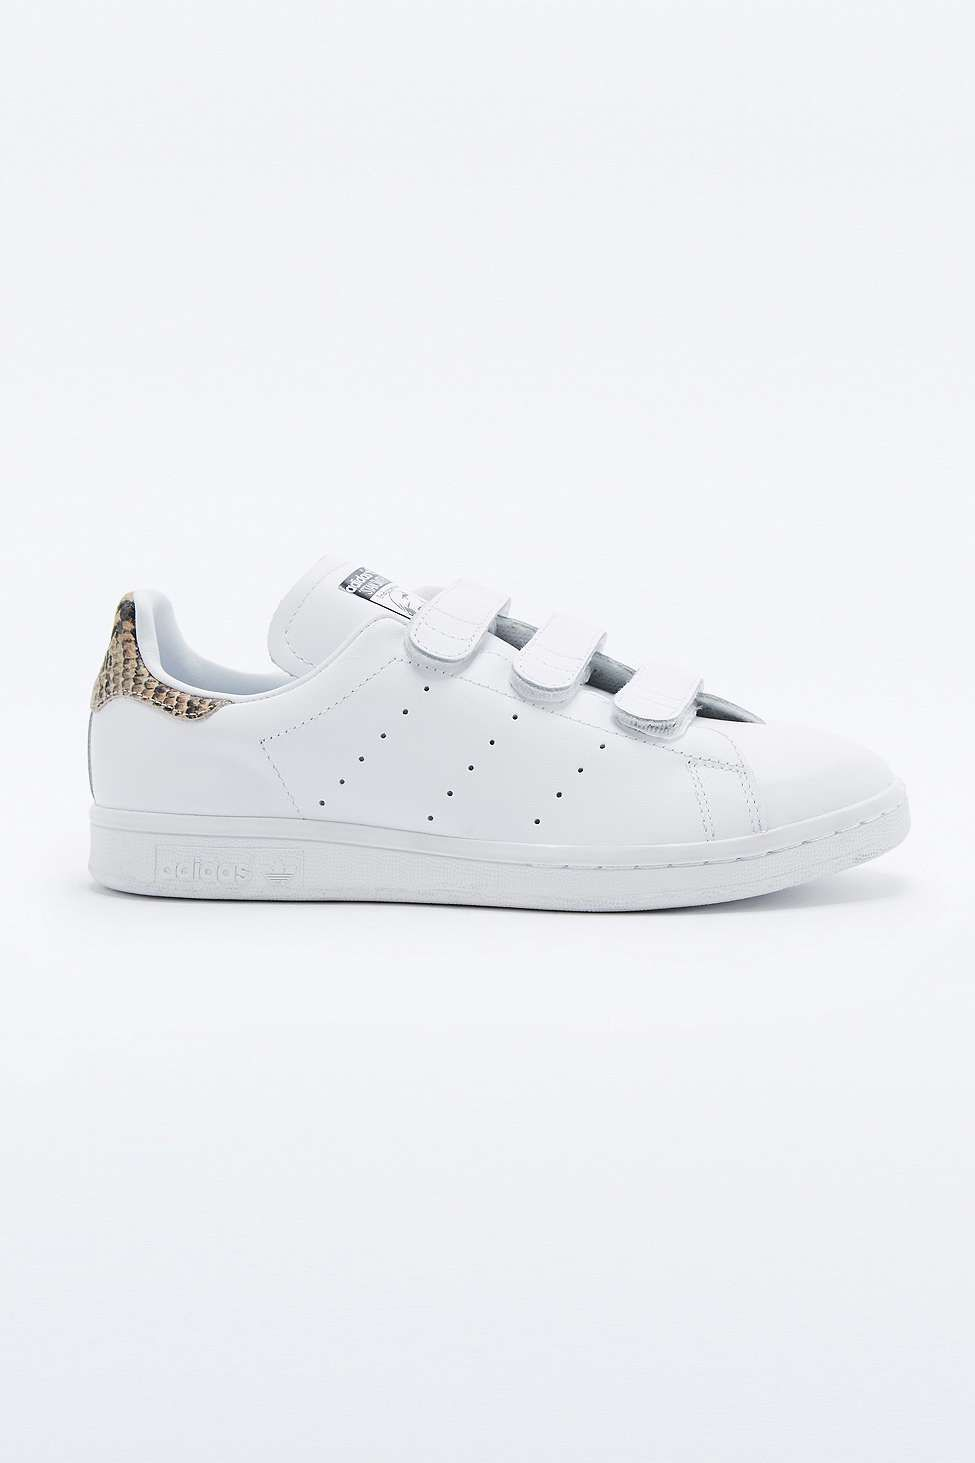 adidas Originals White Snake Velcro Stan Smith Trainers ...